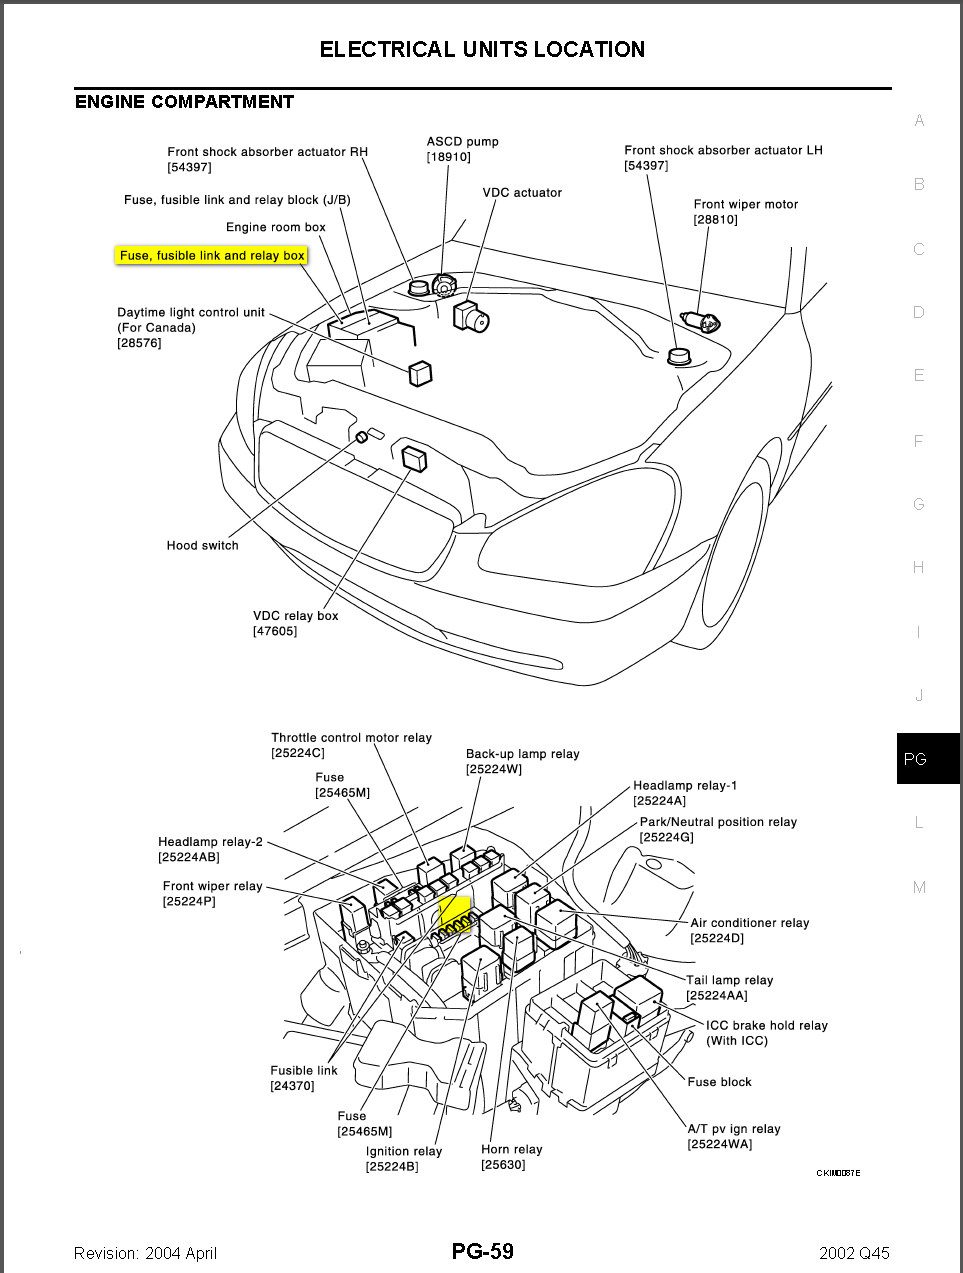 G35 ipdm fuse diagram toyota chevy caprice wiring diagram cat c10 2011 12 19 220649 tail1